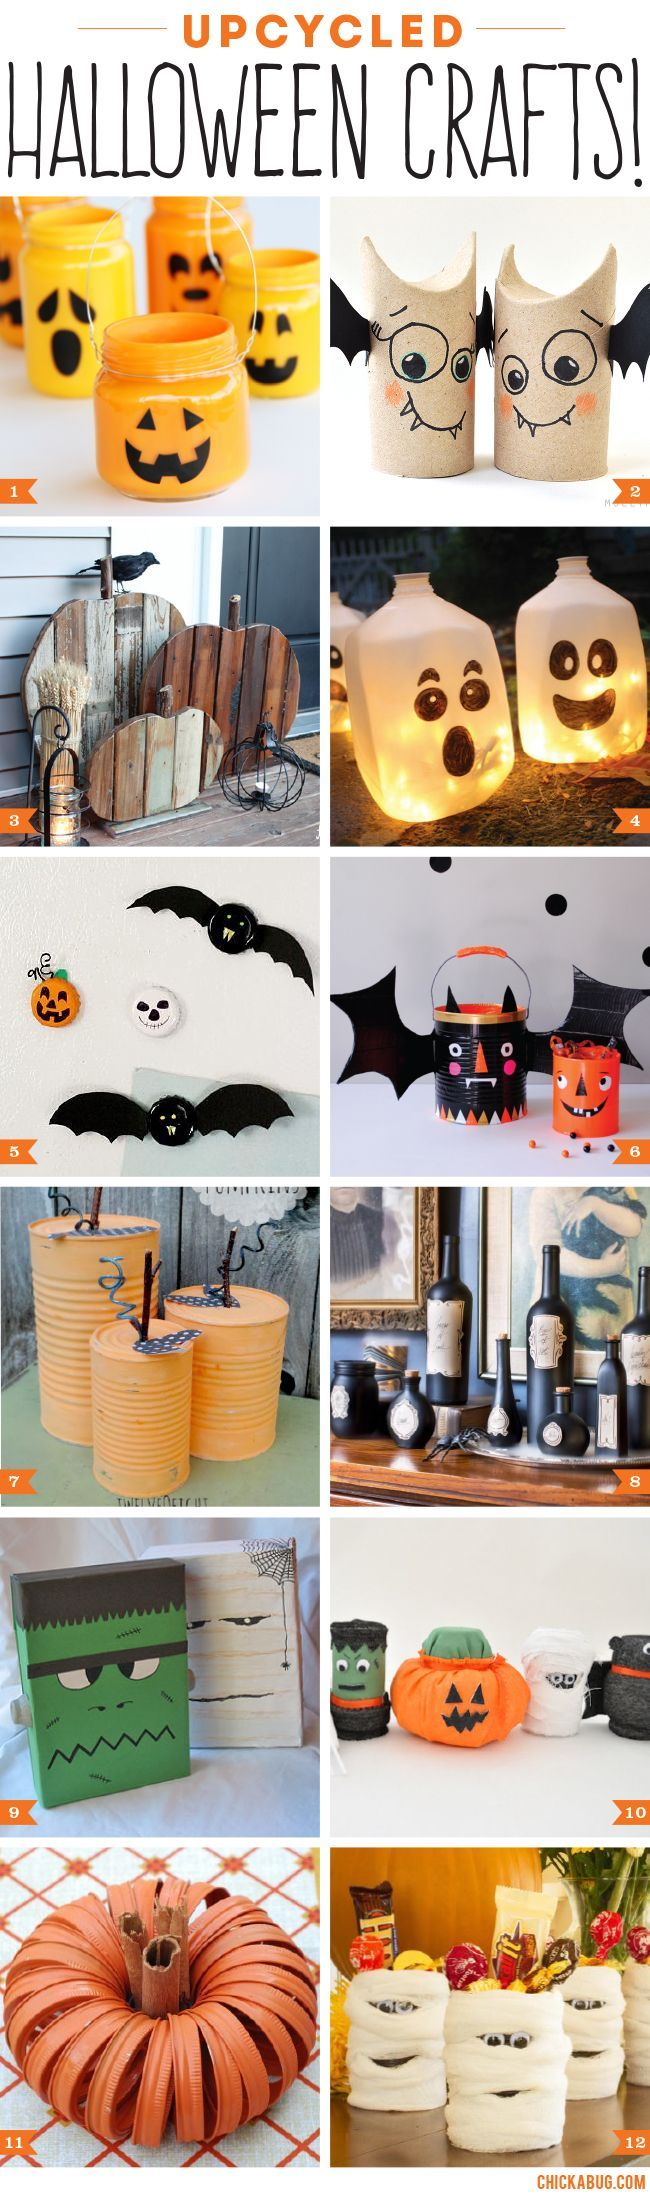 upcycled halloween crafts halloween halloween bricolages halloween et d coration halloween. Black Bedroom Furniture Sets. Home Design Ideas